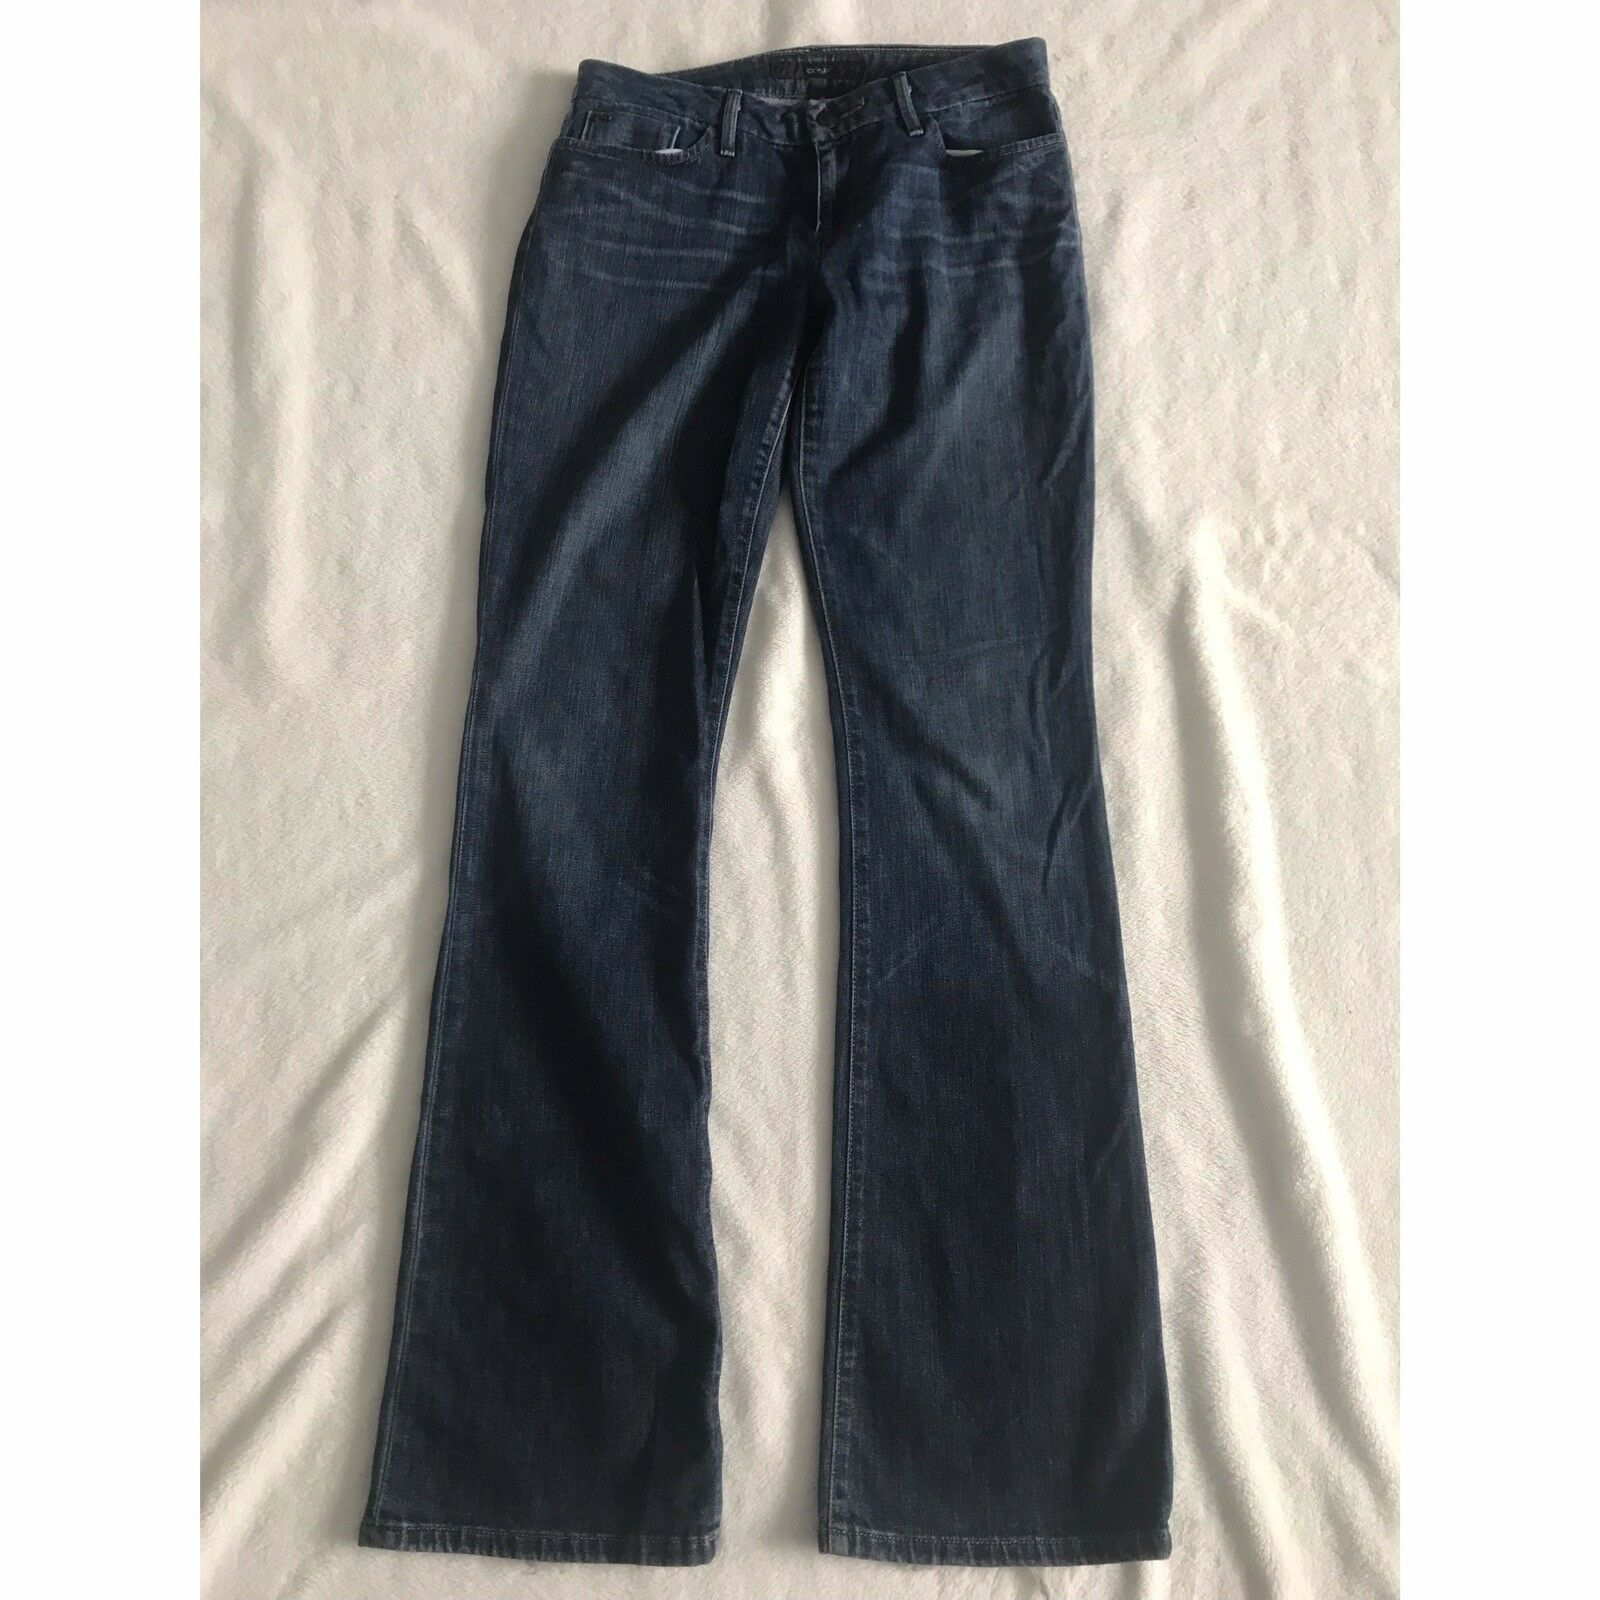 Joes Jeans Honey Fit Faded Size 28